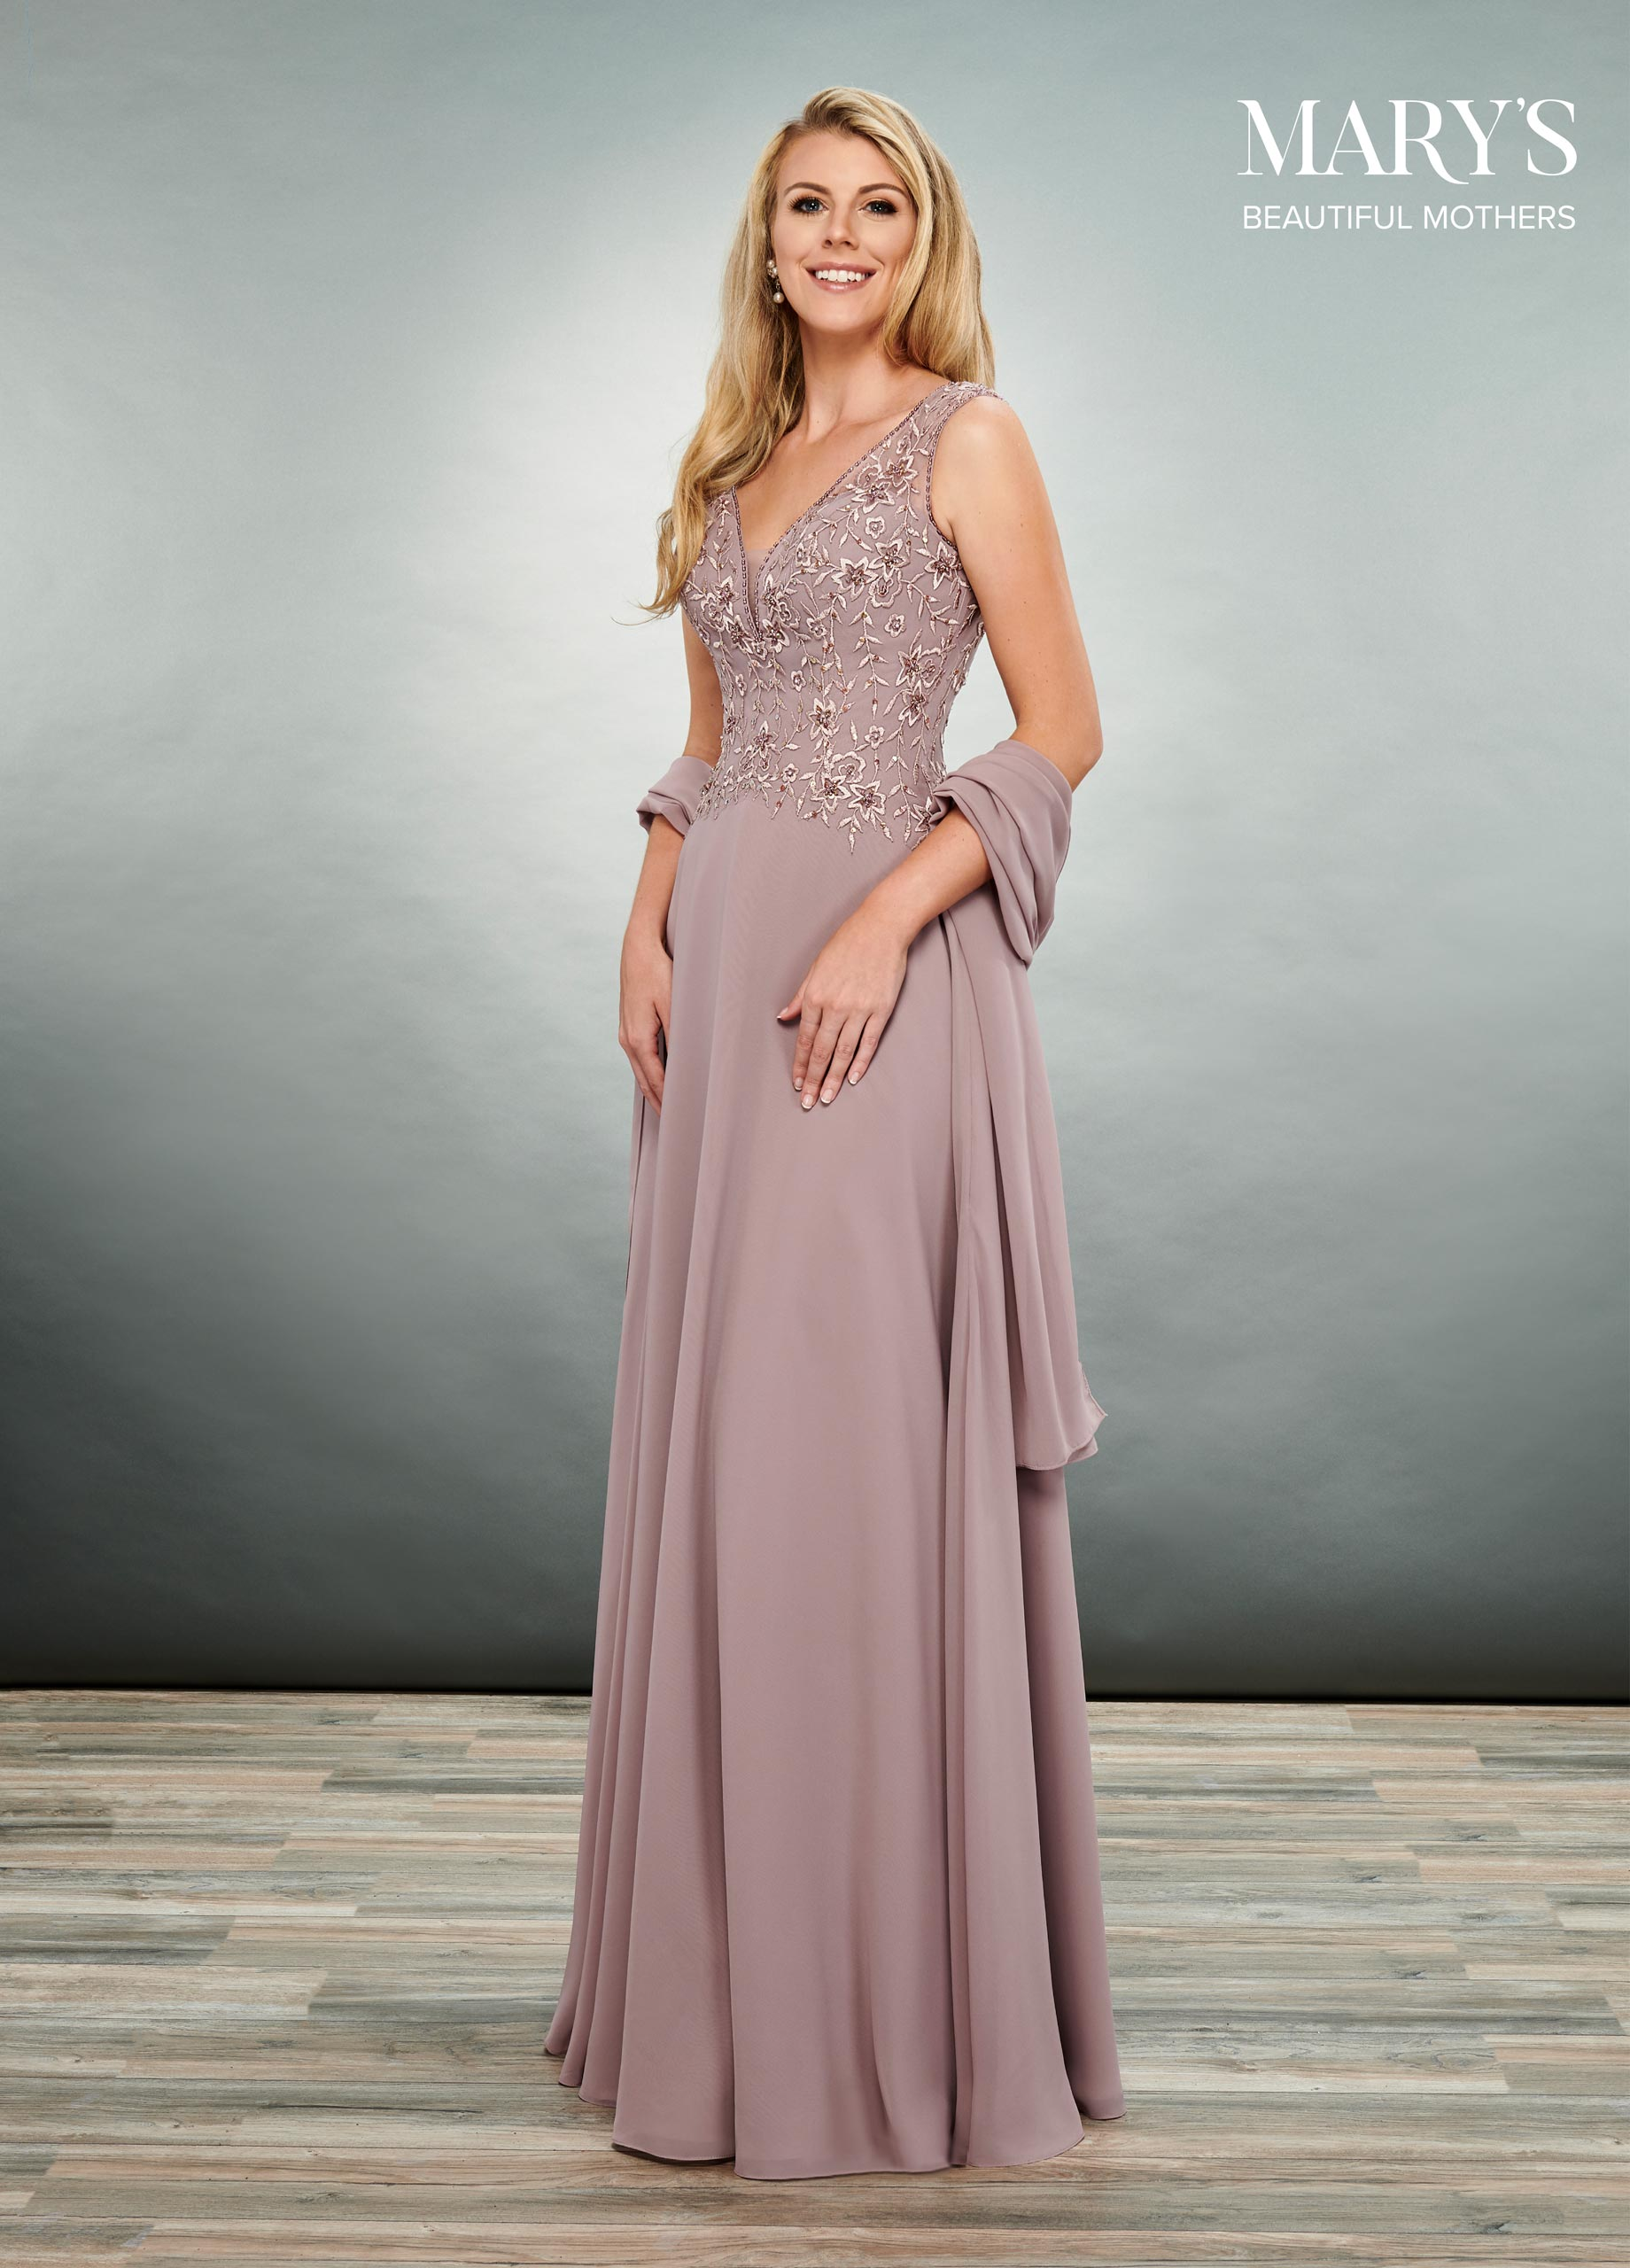 Mother Of The Bride Dresses | Beautiful Mothers | Style - MB8072